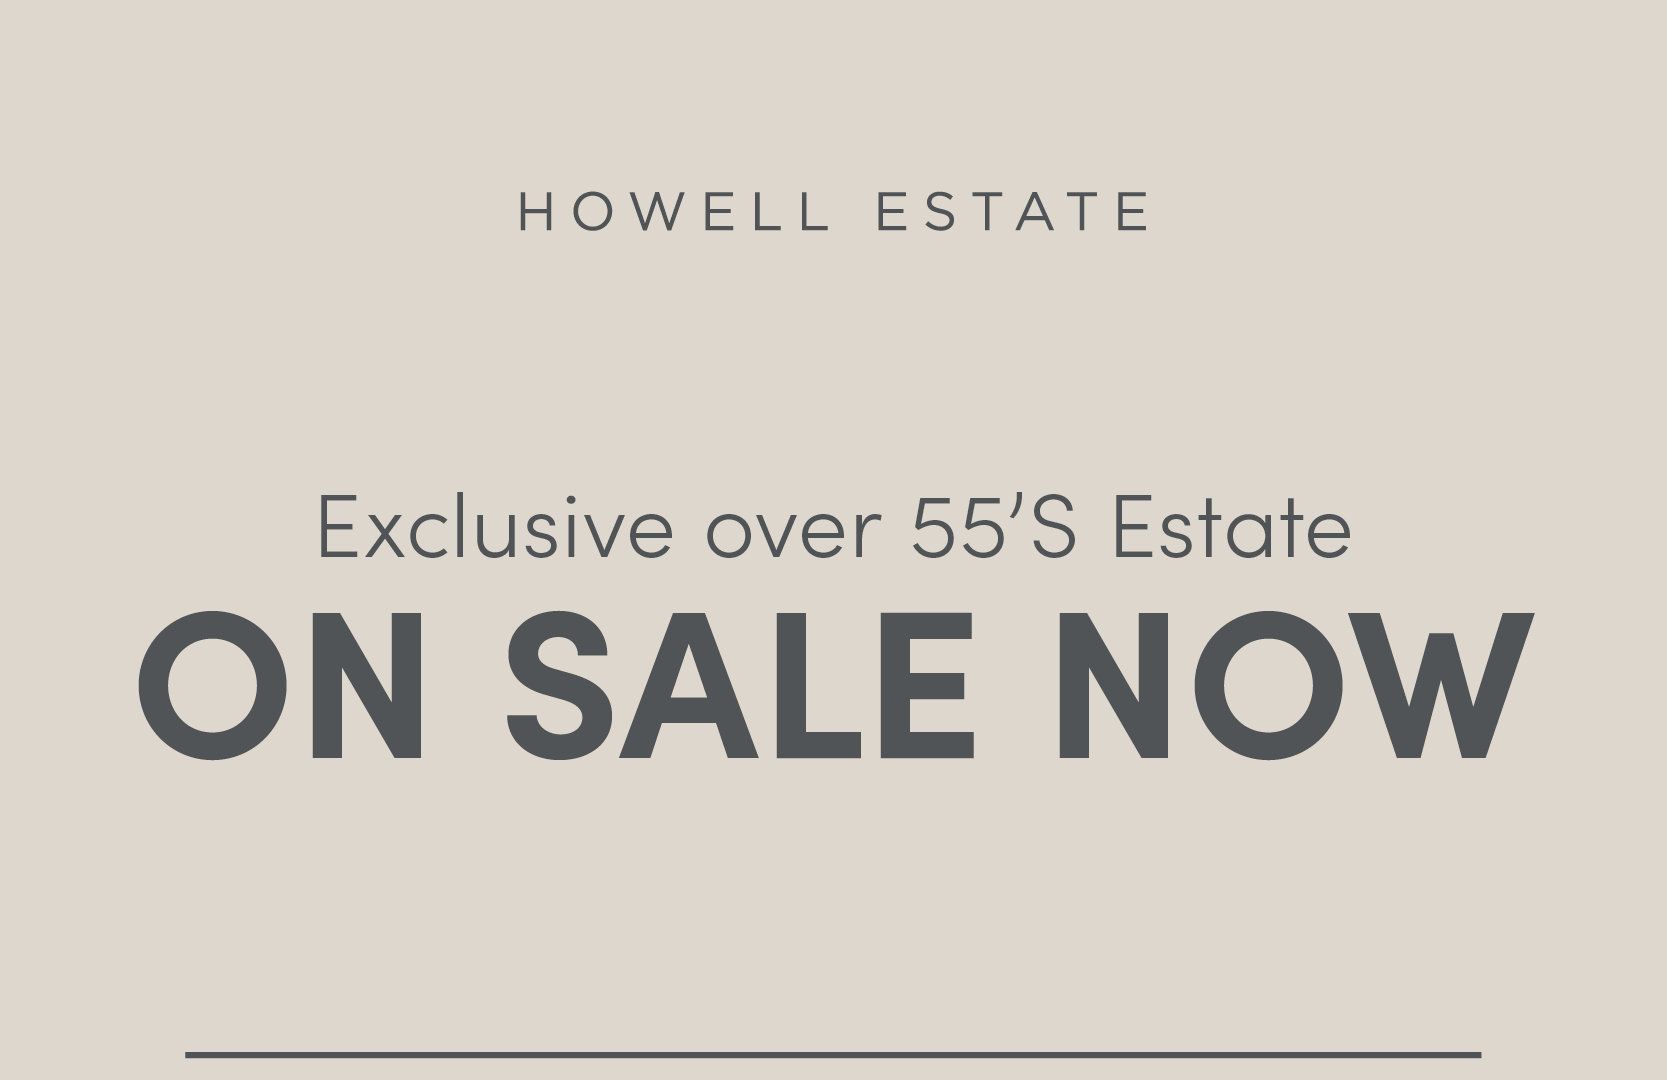 Howell Estate